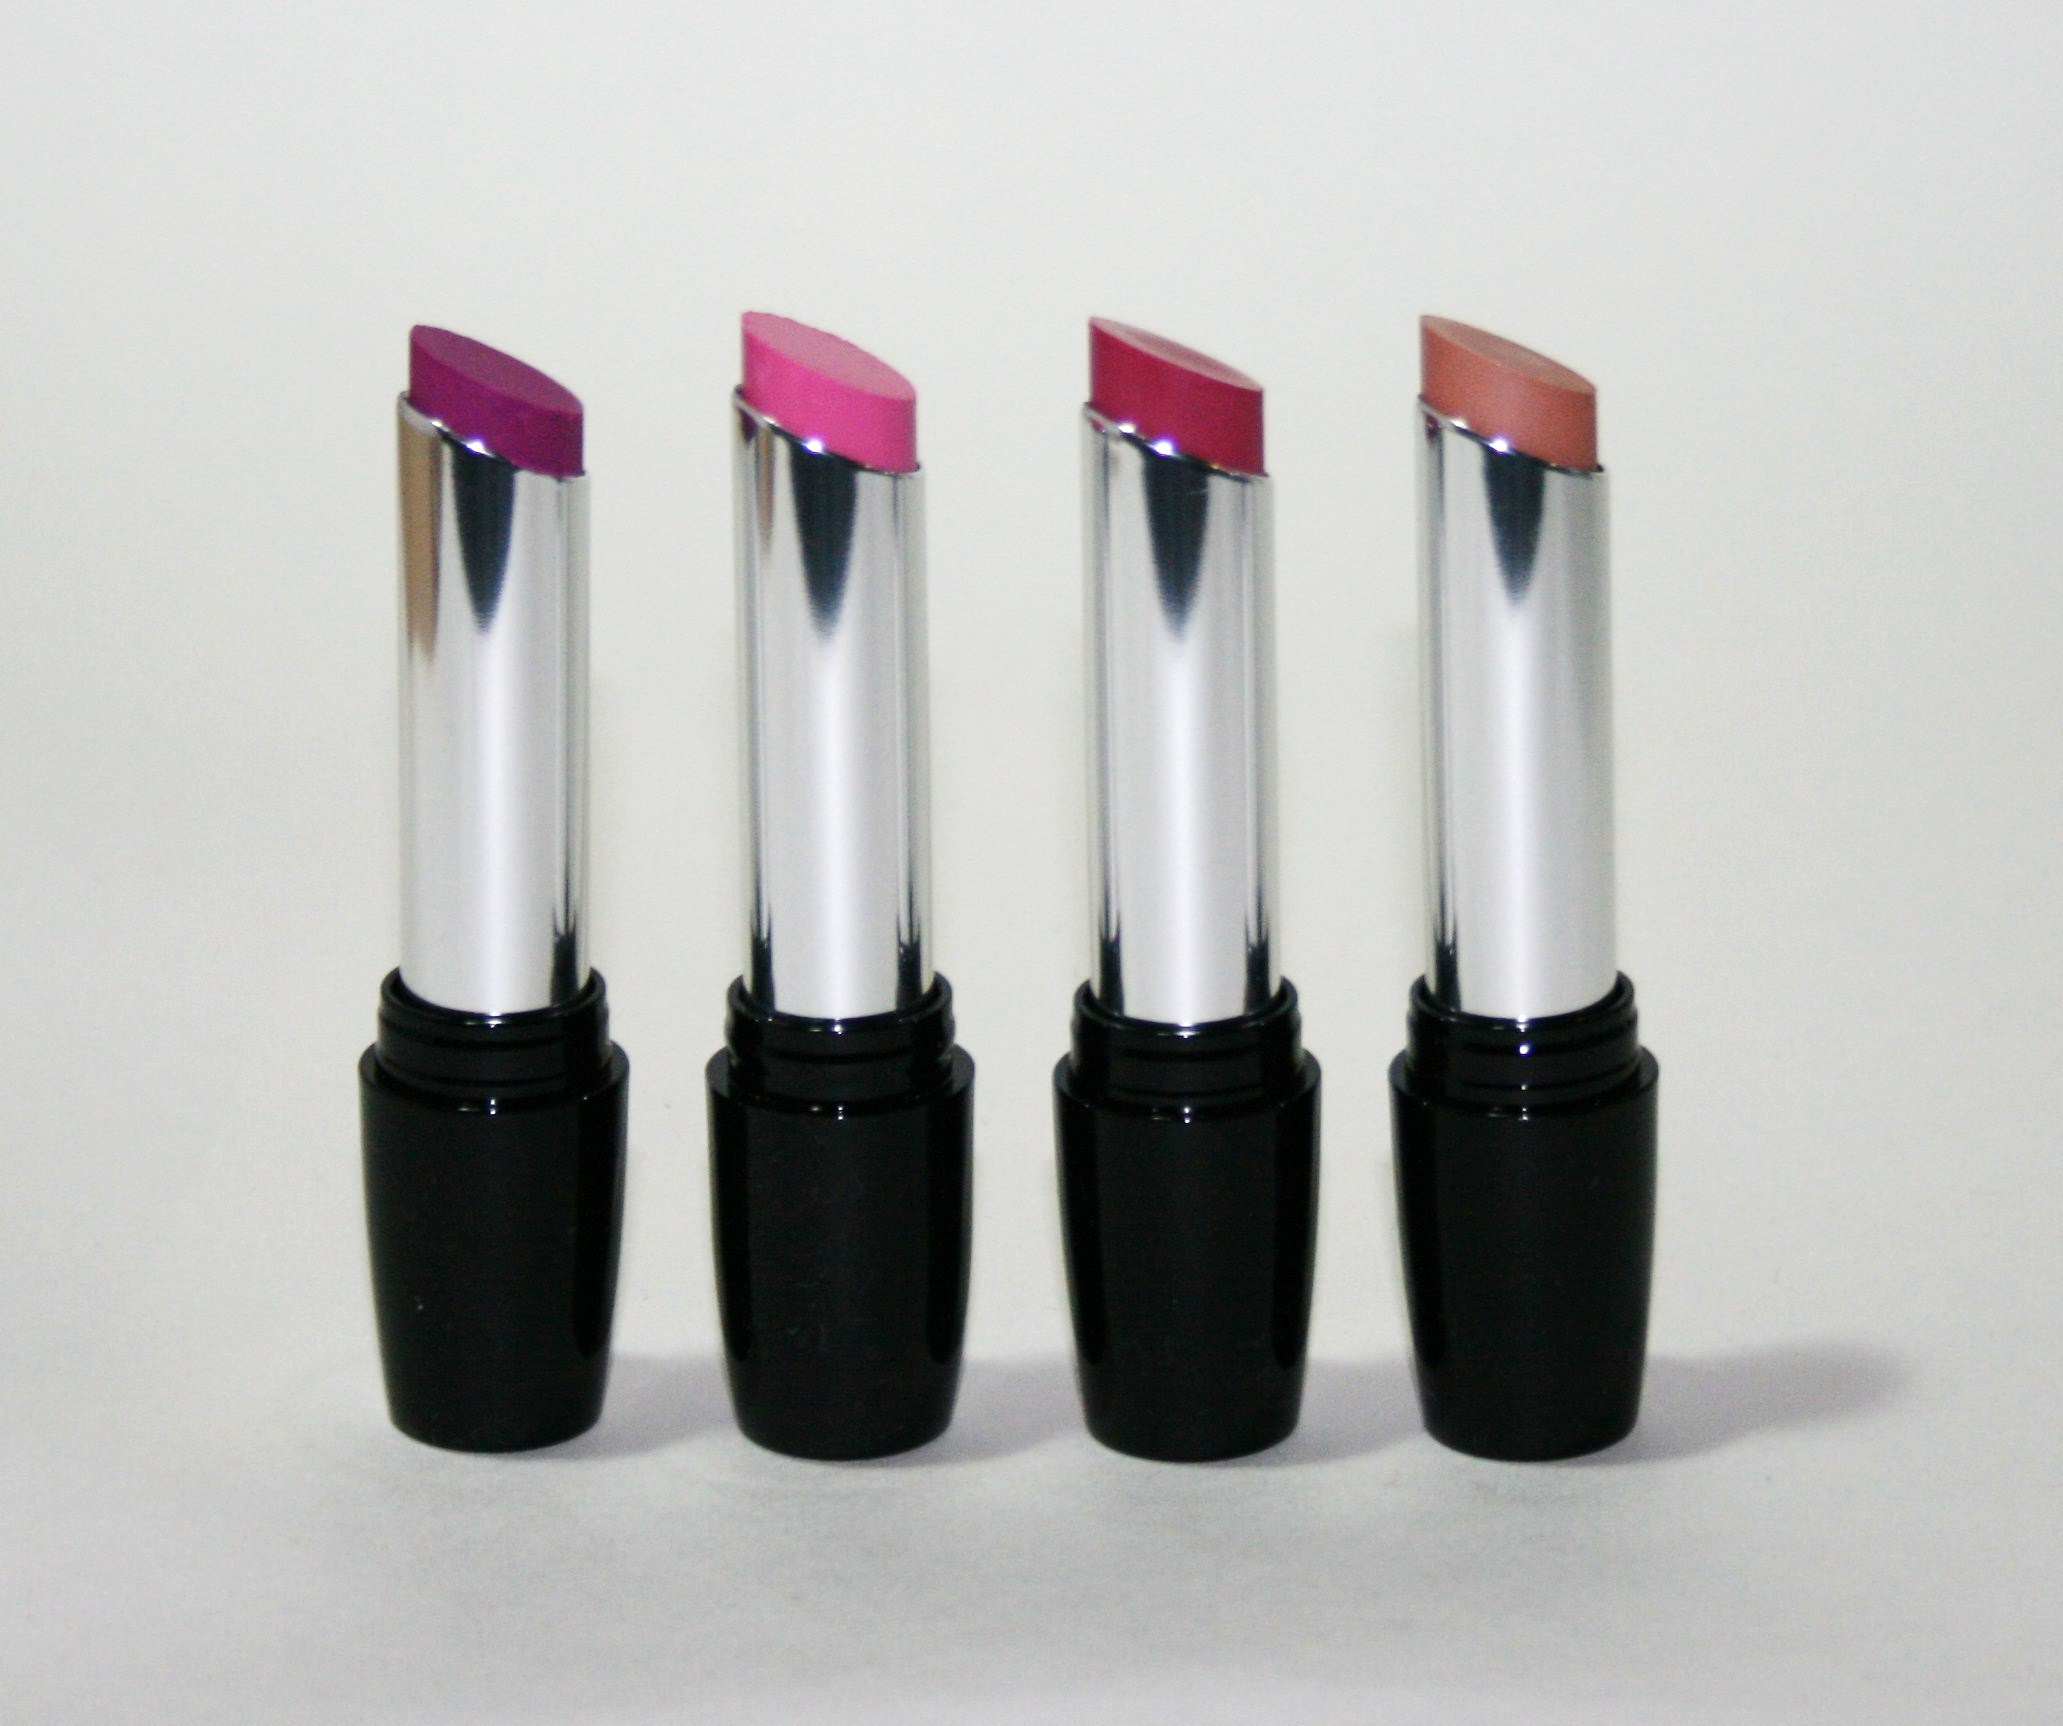 Avon Ultra Colour Indulgence Lipsticks